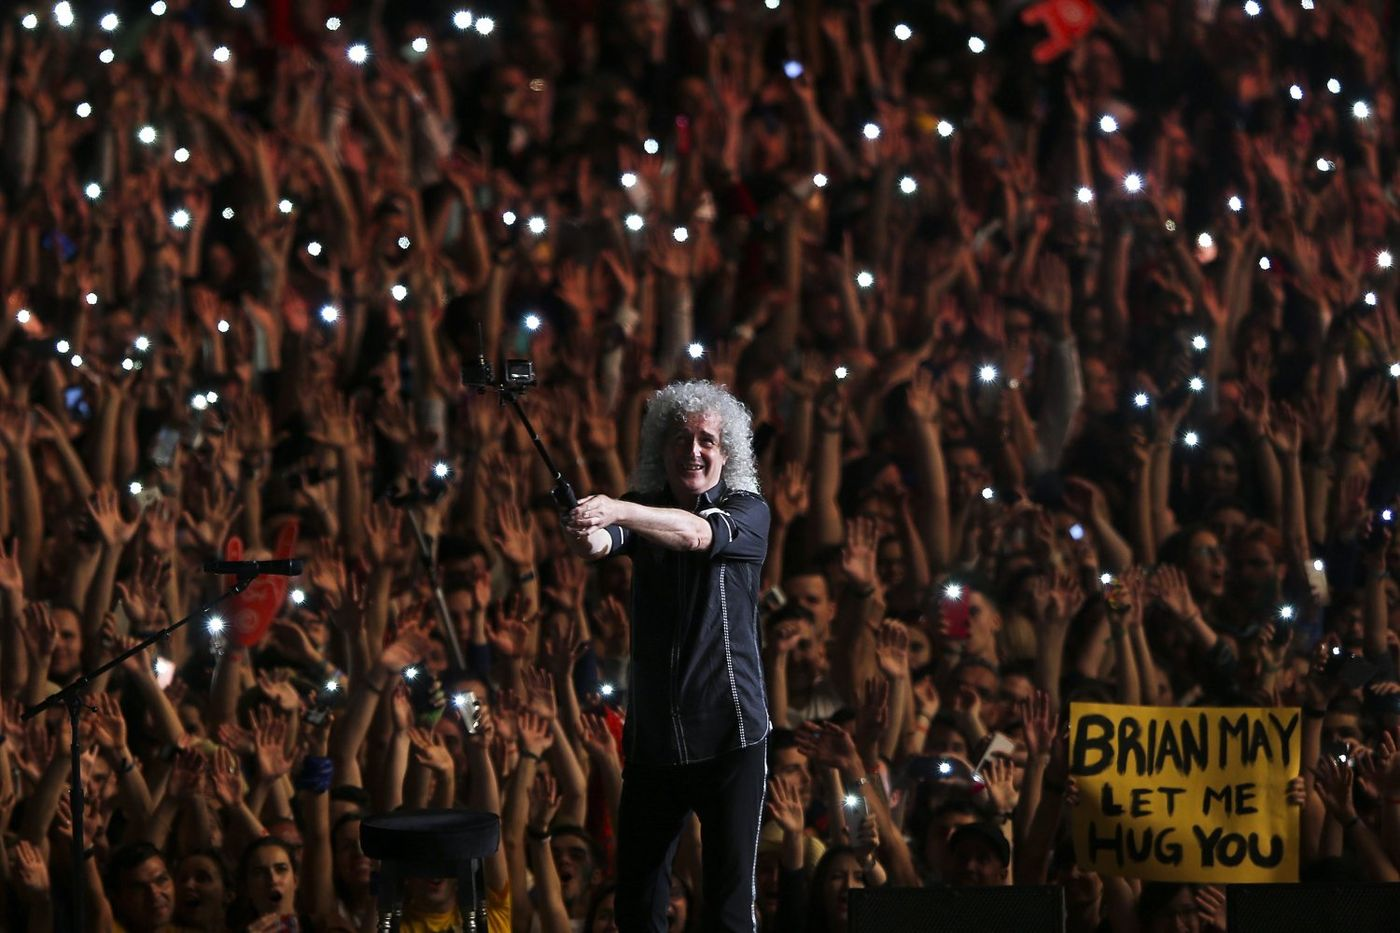 He will rock you - Happy Birthday, Brian May!